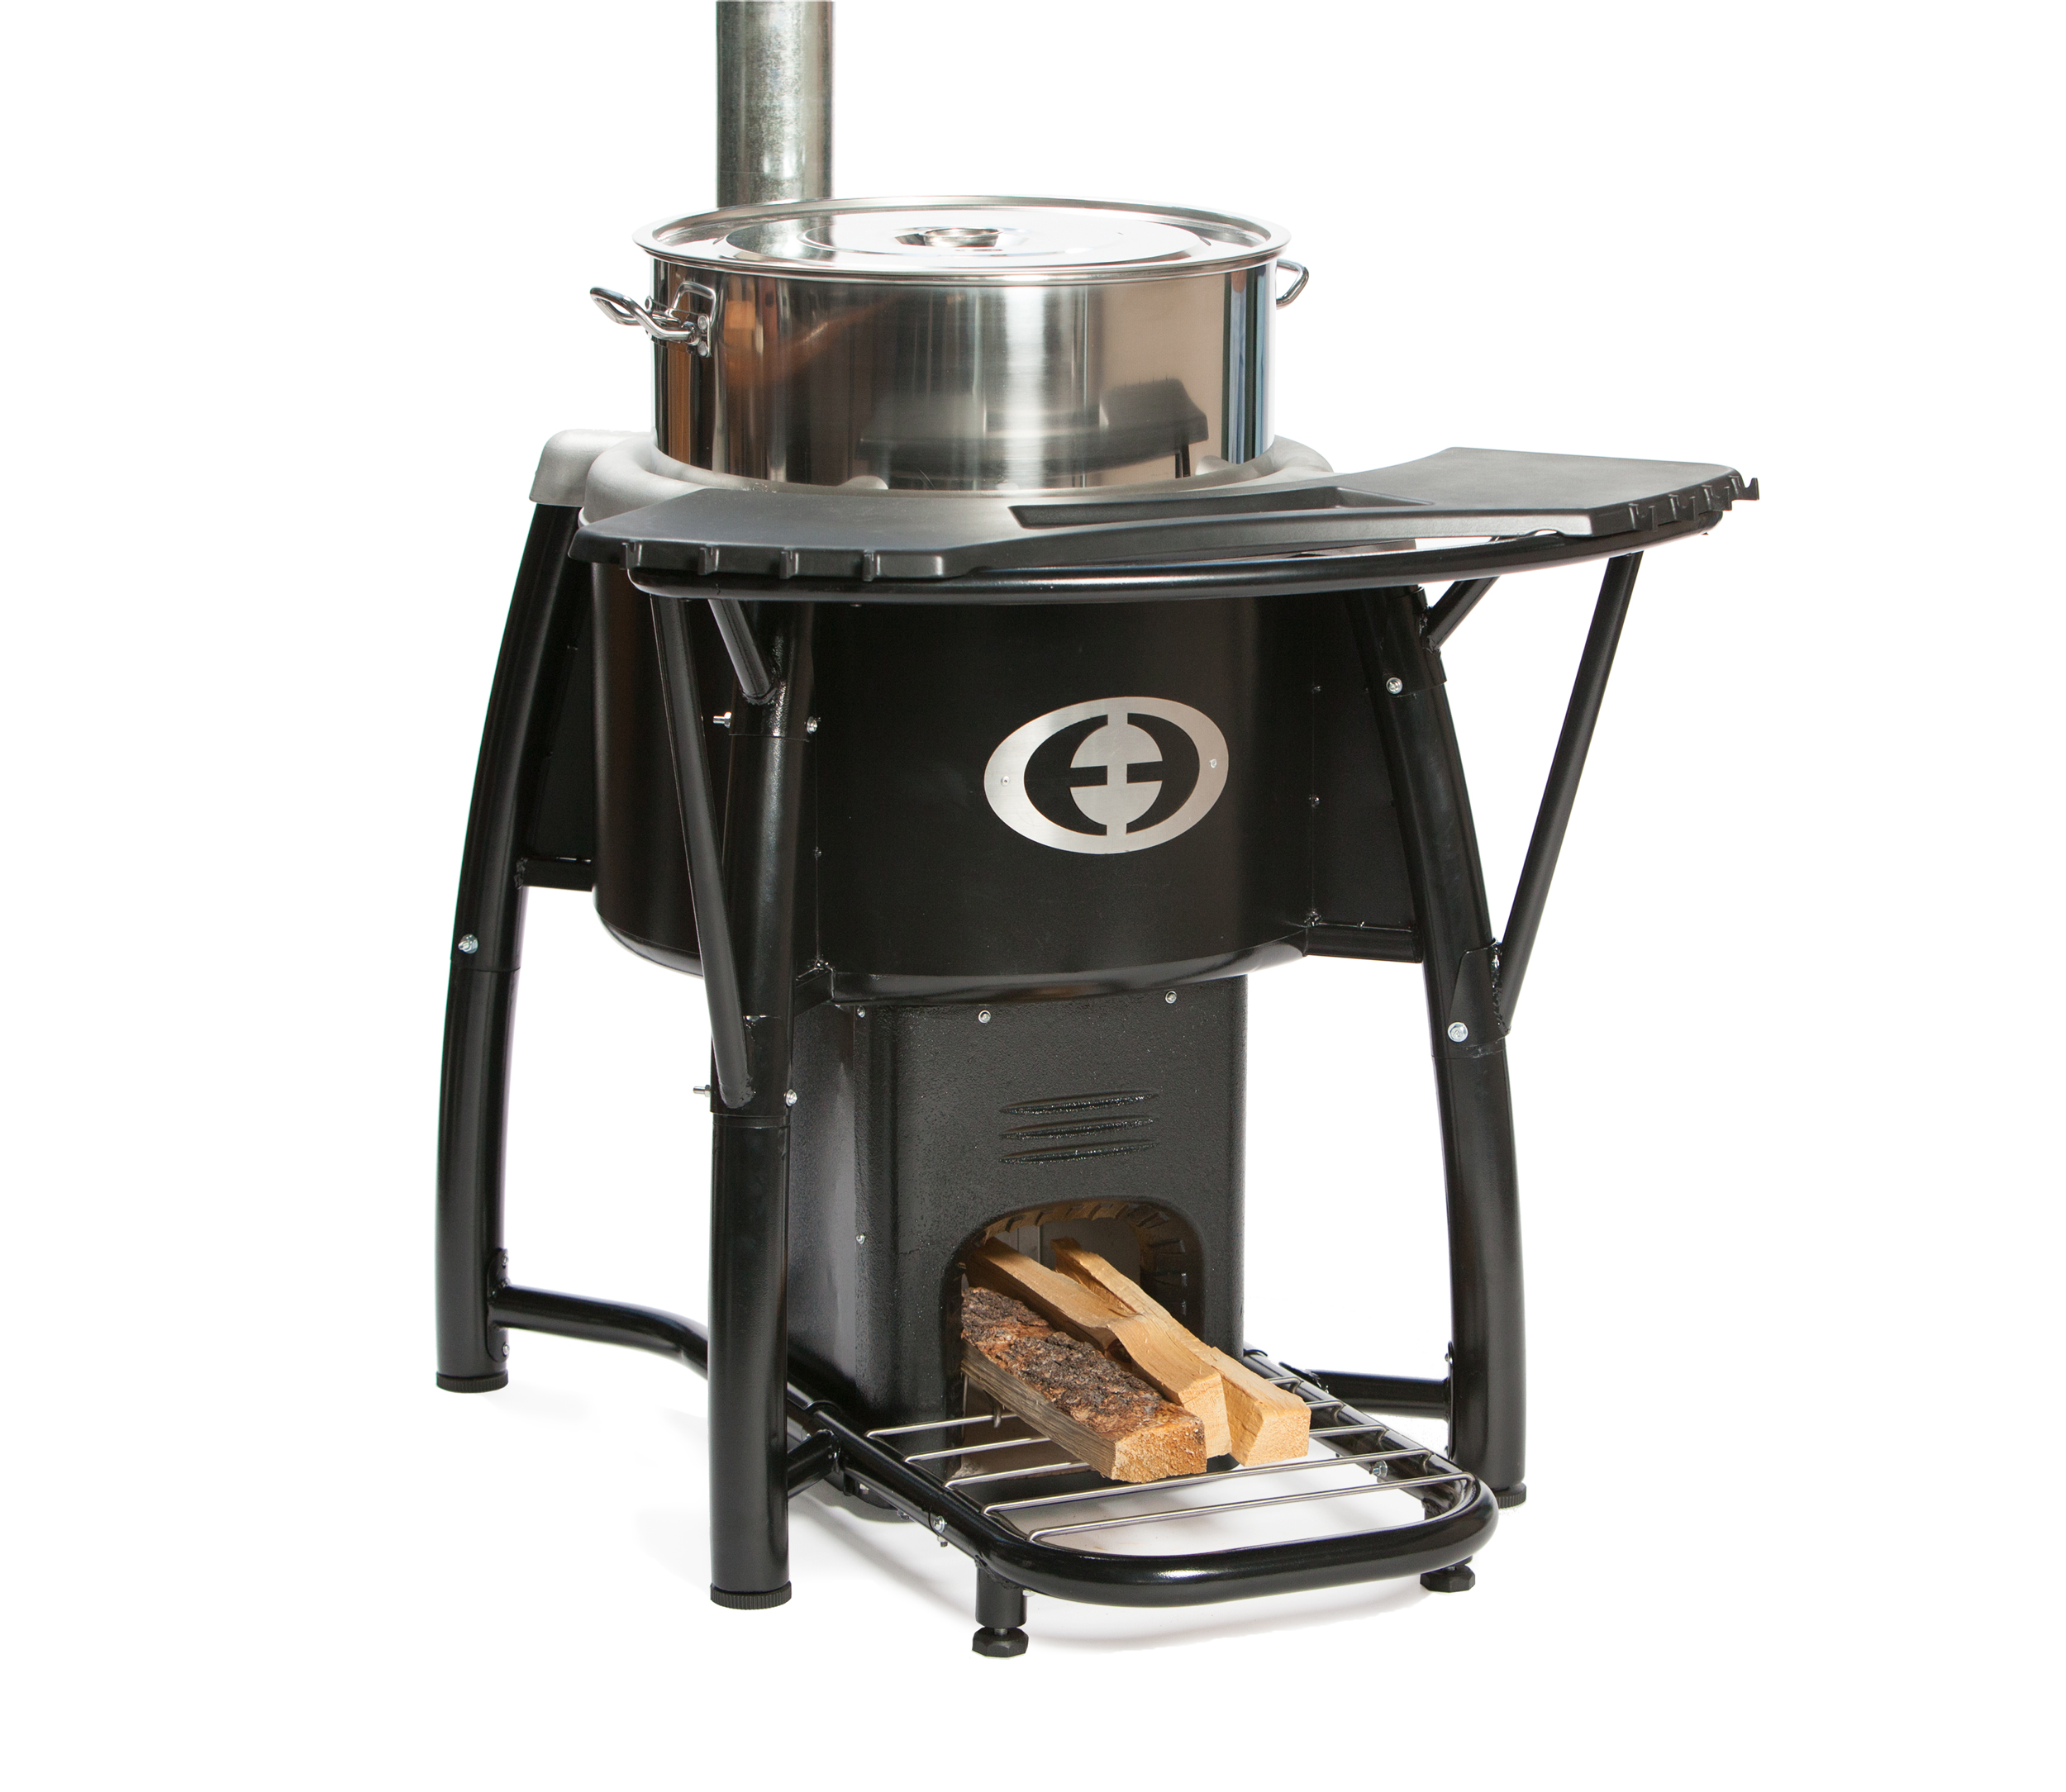 SaverPro 100 Wood Cookstove